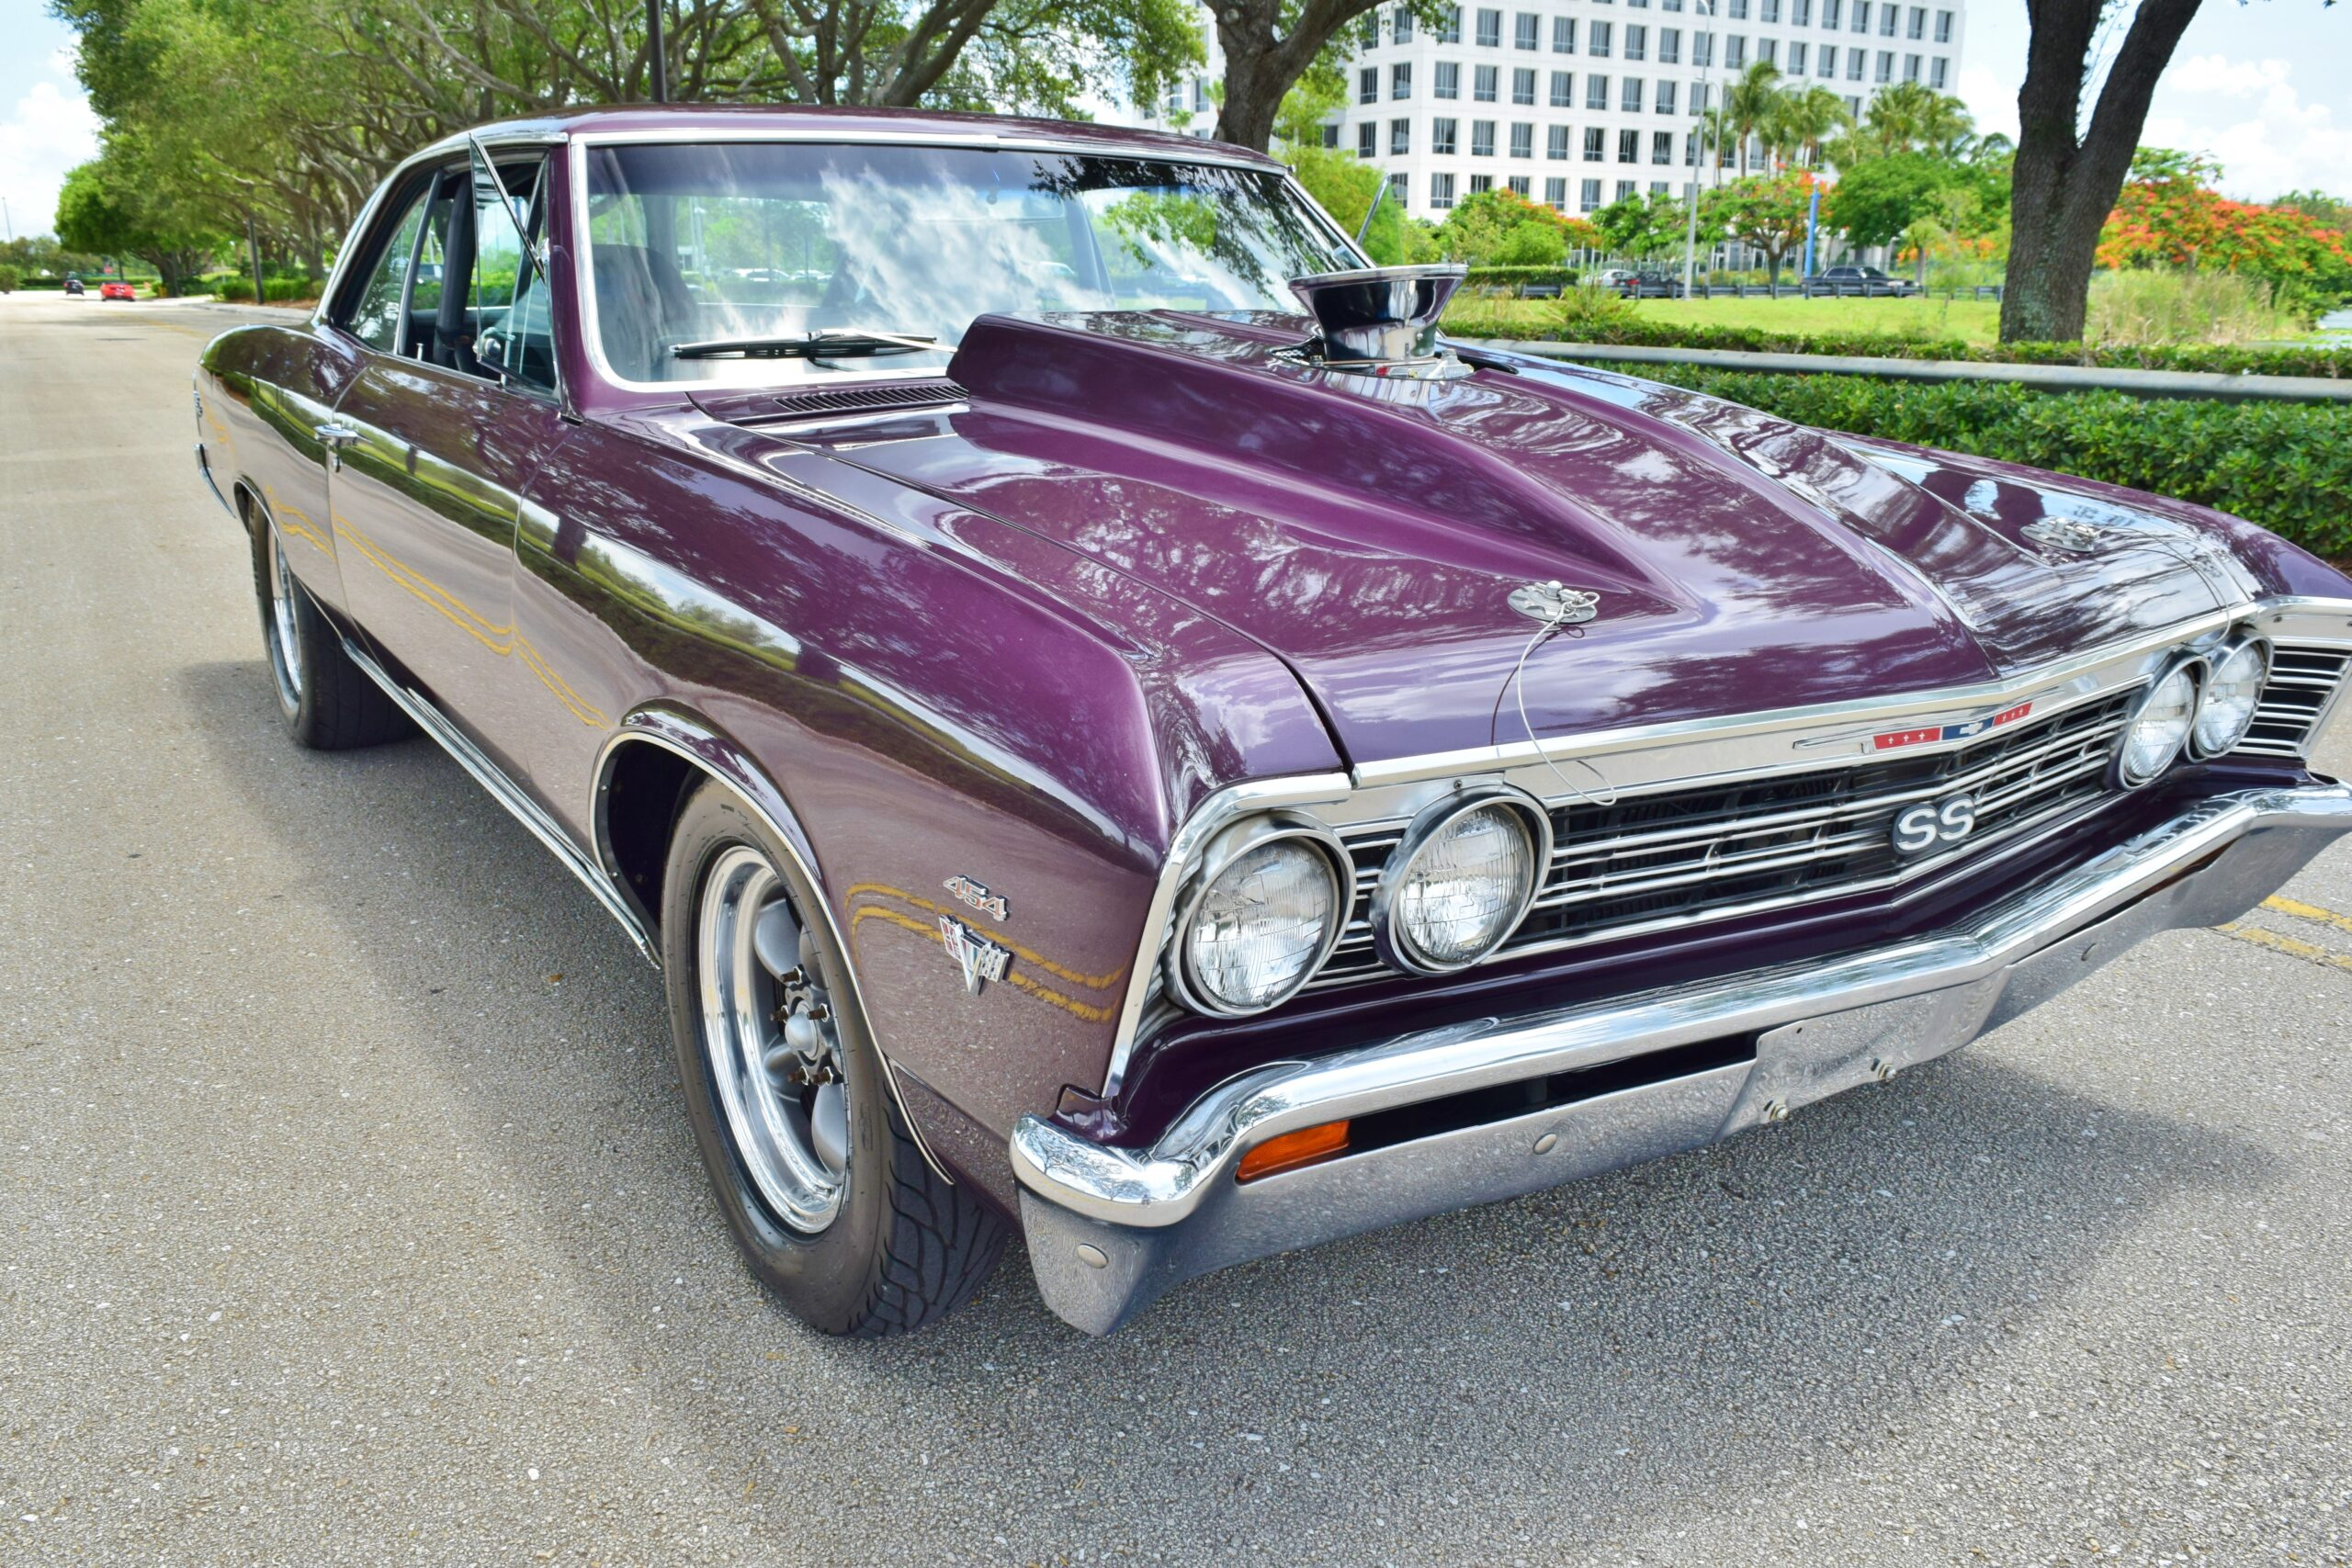 1967 Chevrolet Chevelle Malibu SS 632CI CHEVELLE STREET CAR 632 C.I. 10 LITER / 1000 HP TURBO 400 WITH OVER DRIVE